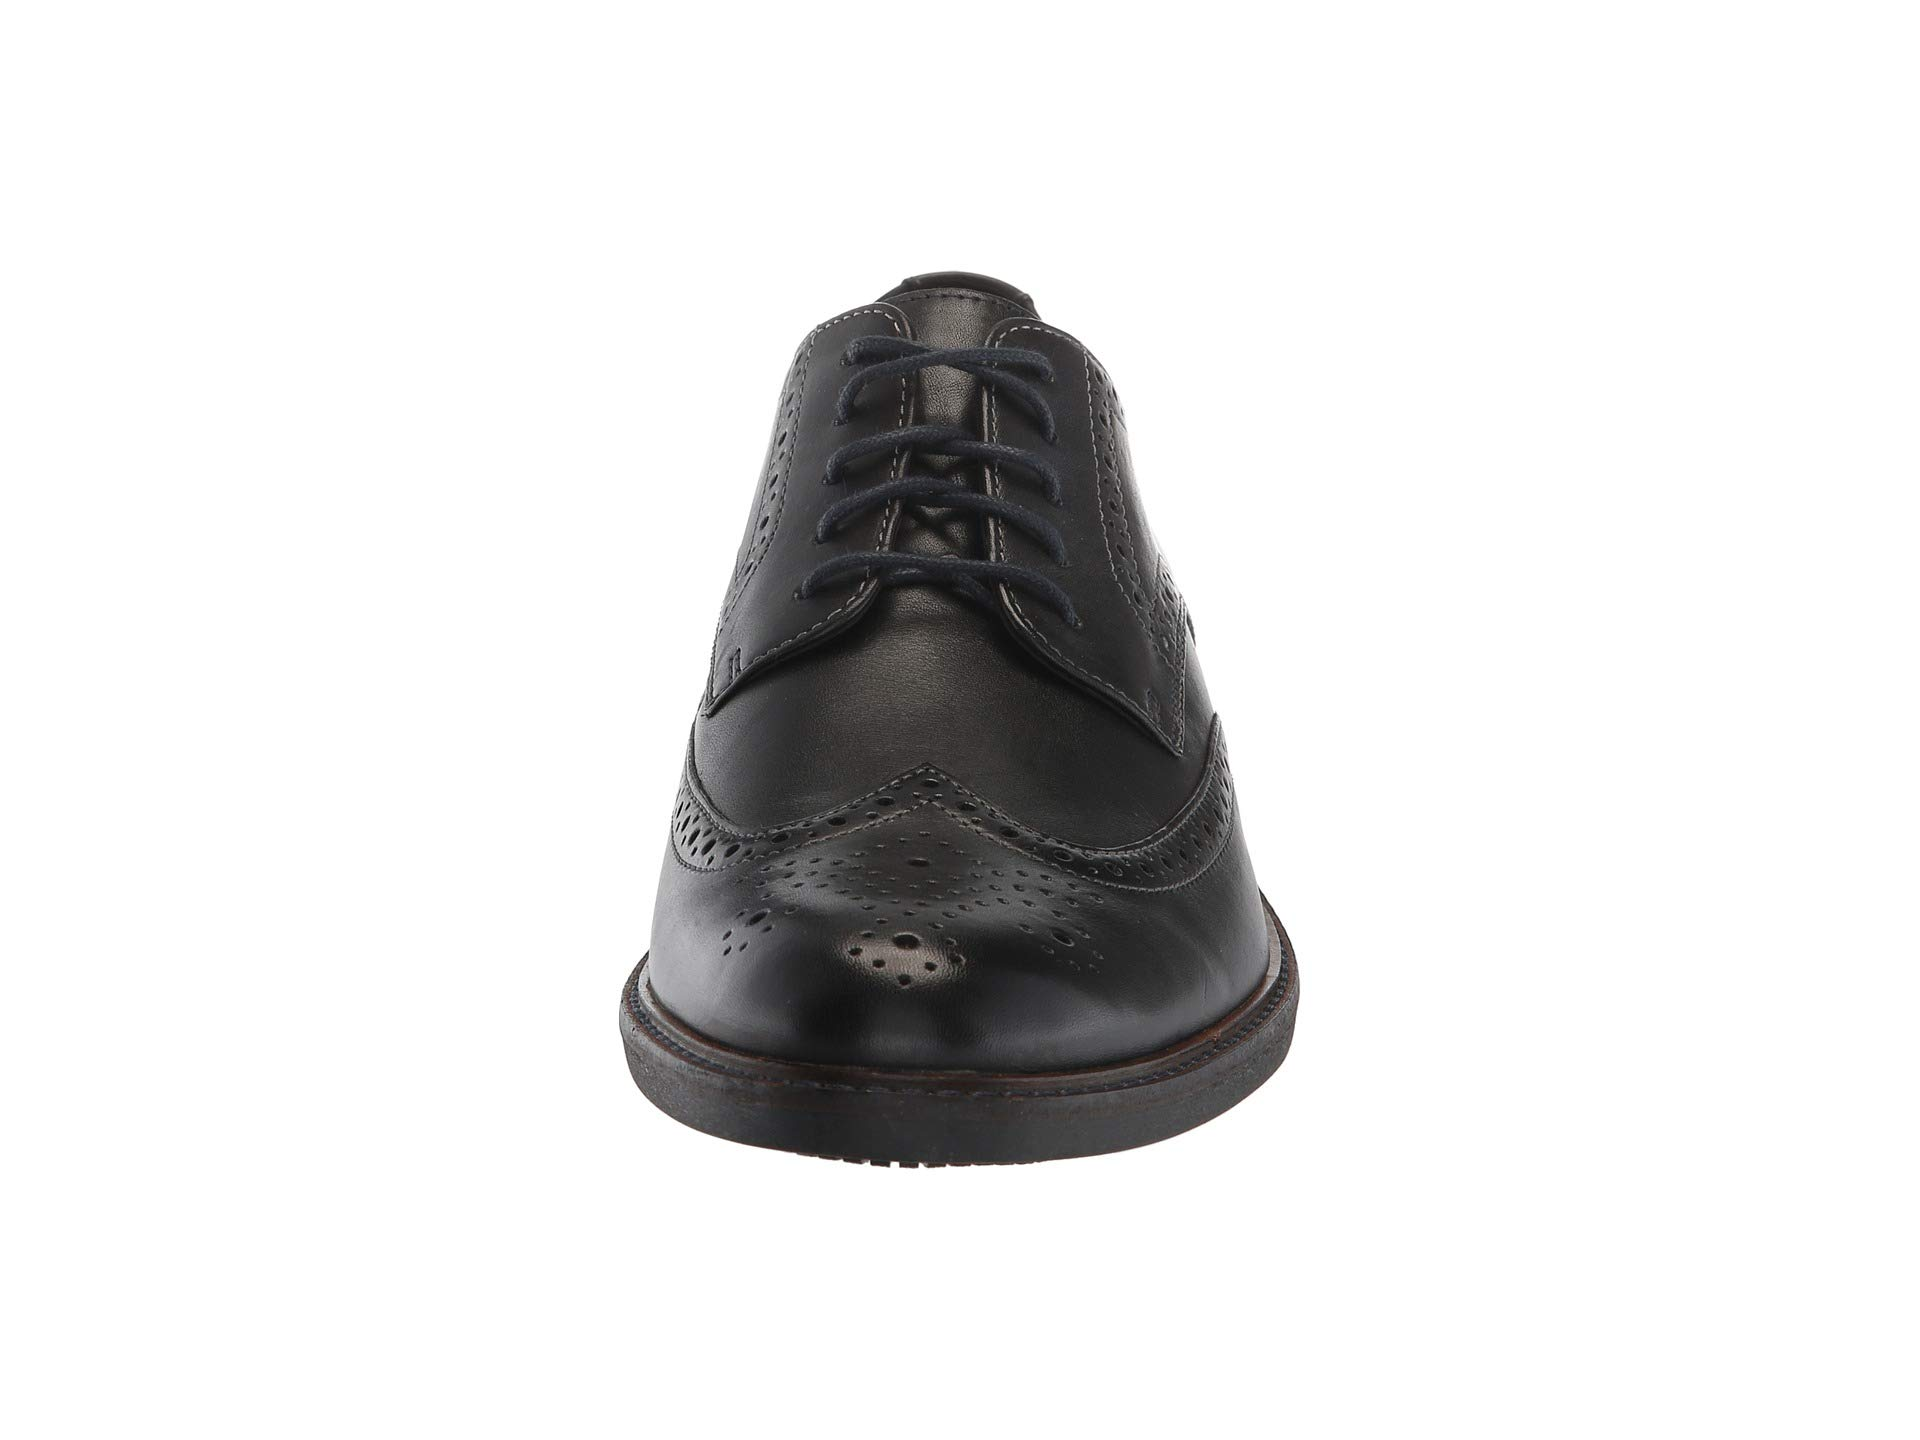 Wing Leather Black Maxton Bostonian Bostonian Maxton 1aFn8Zxw